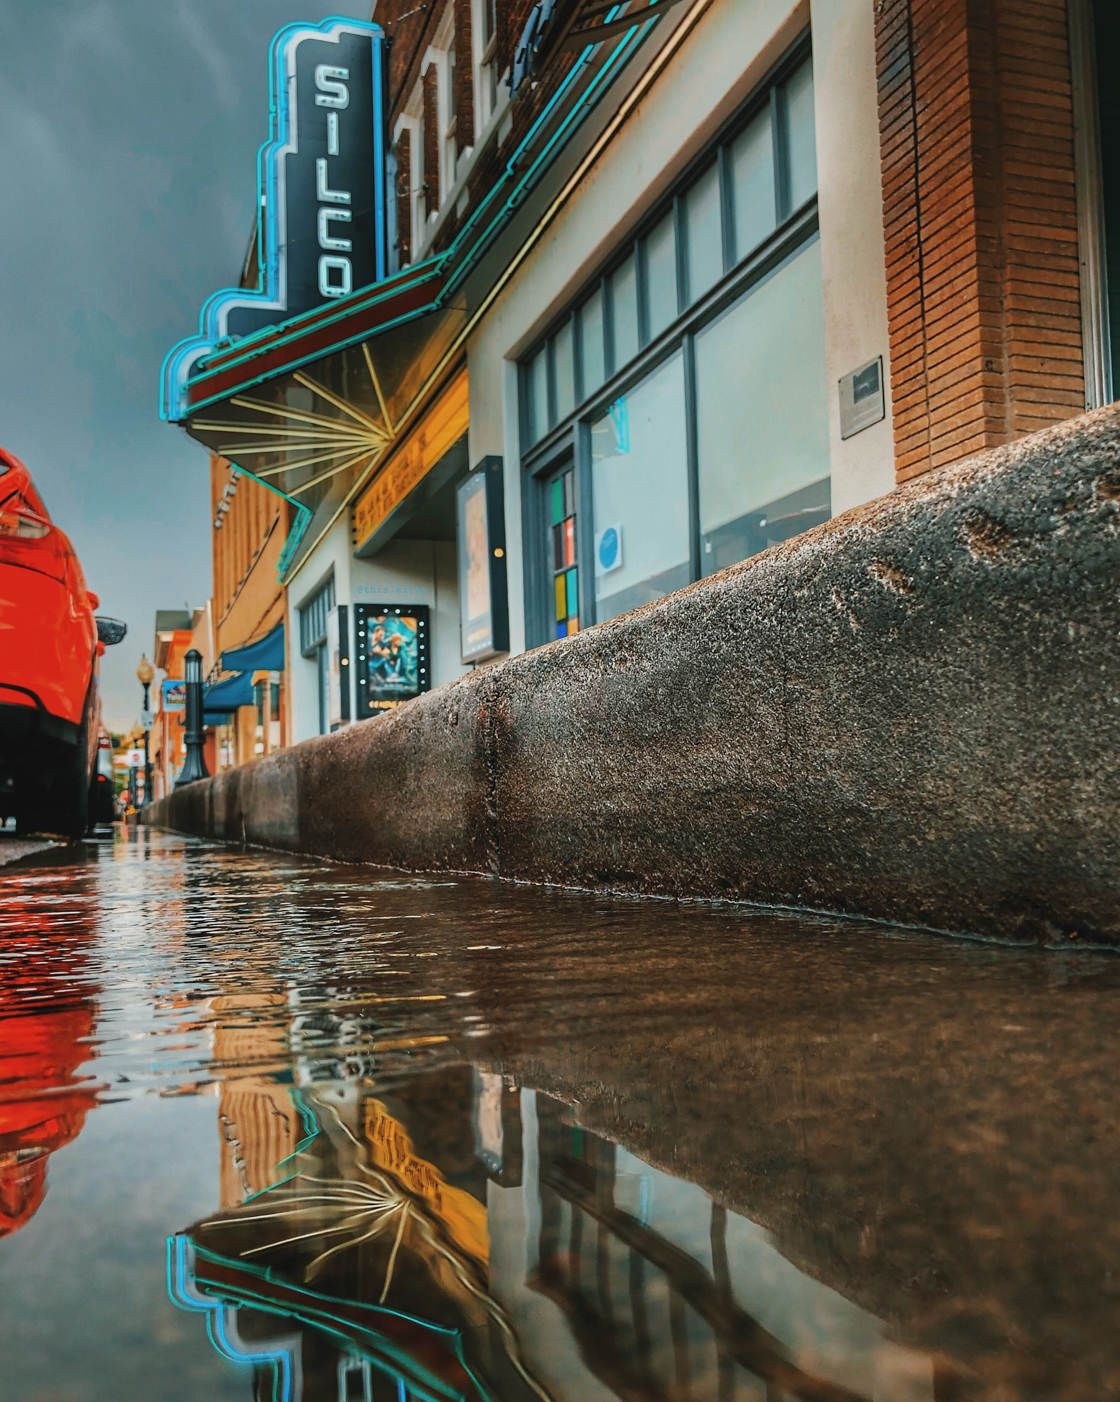 8 Tips For Gorgeous Urban Landscape Photography On Iphone In 2020 Urban Landscape Landscape Photography Urban Landscape Photography